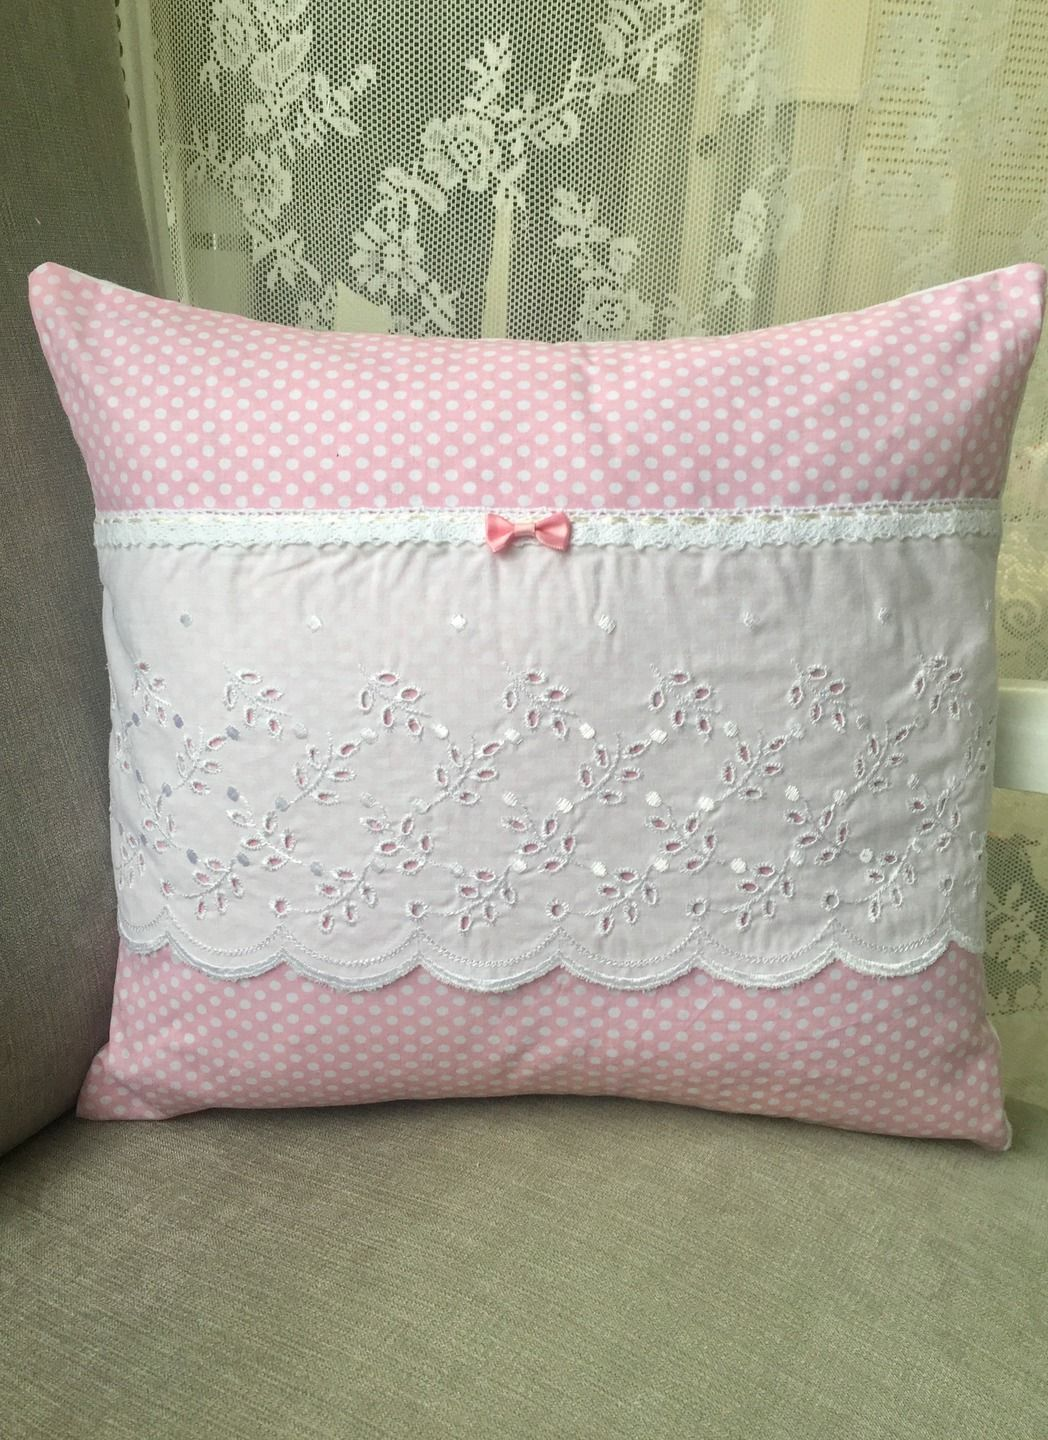 coussin 40x40 coton pois roses blancs broderie anglaise dentelle noeud shabby chic textiles et. Black Bedroom Furniture Sets. Home Design Ideas